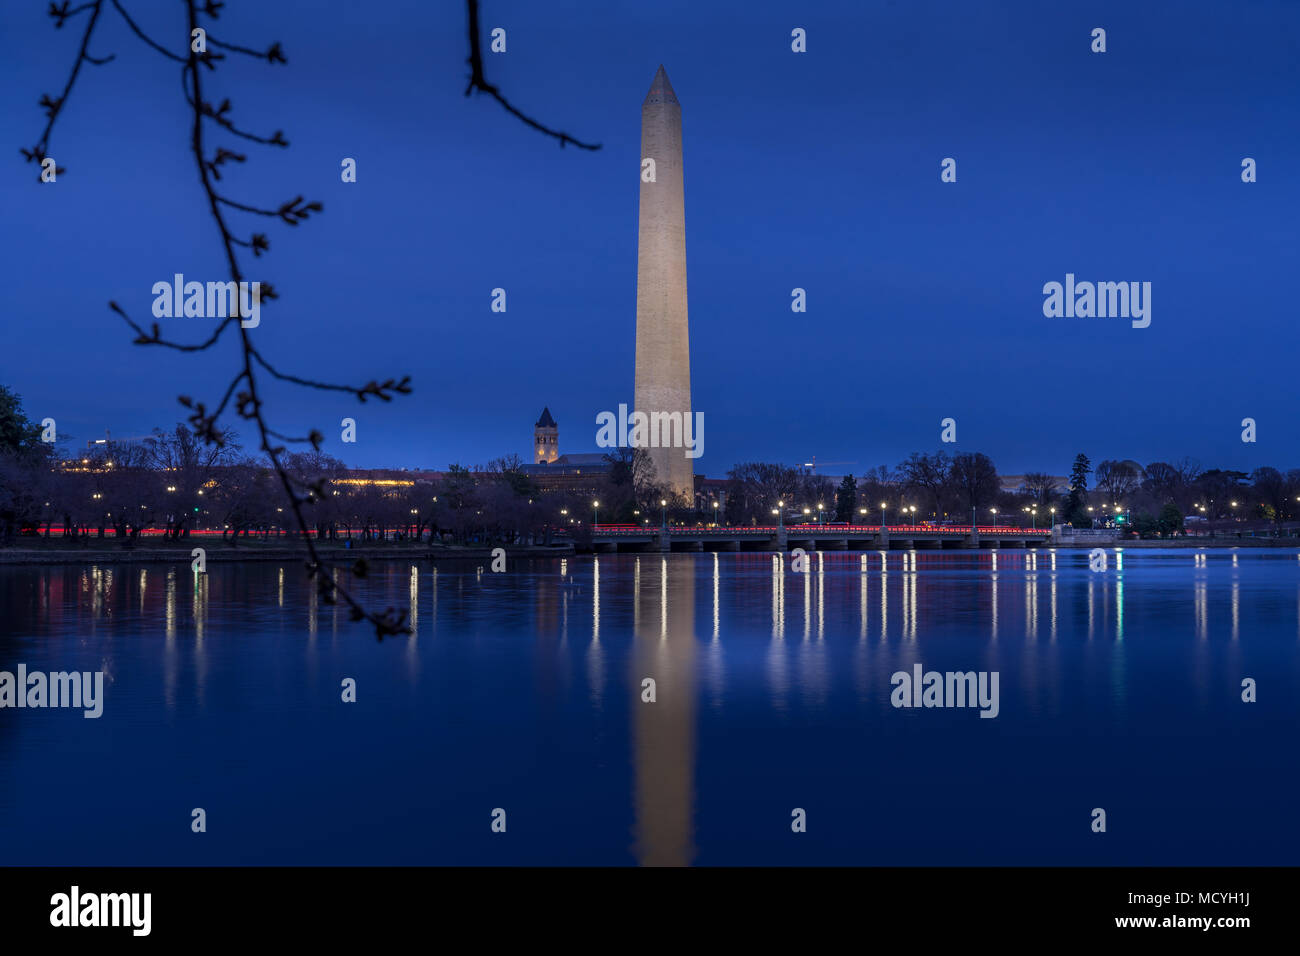 Washington DC. USA - March 24, 2018. Beautiful view of Washington Monument in twilight scene with reflection in the water - Stock Image